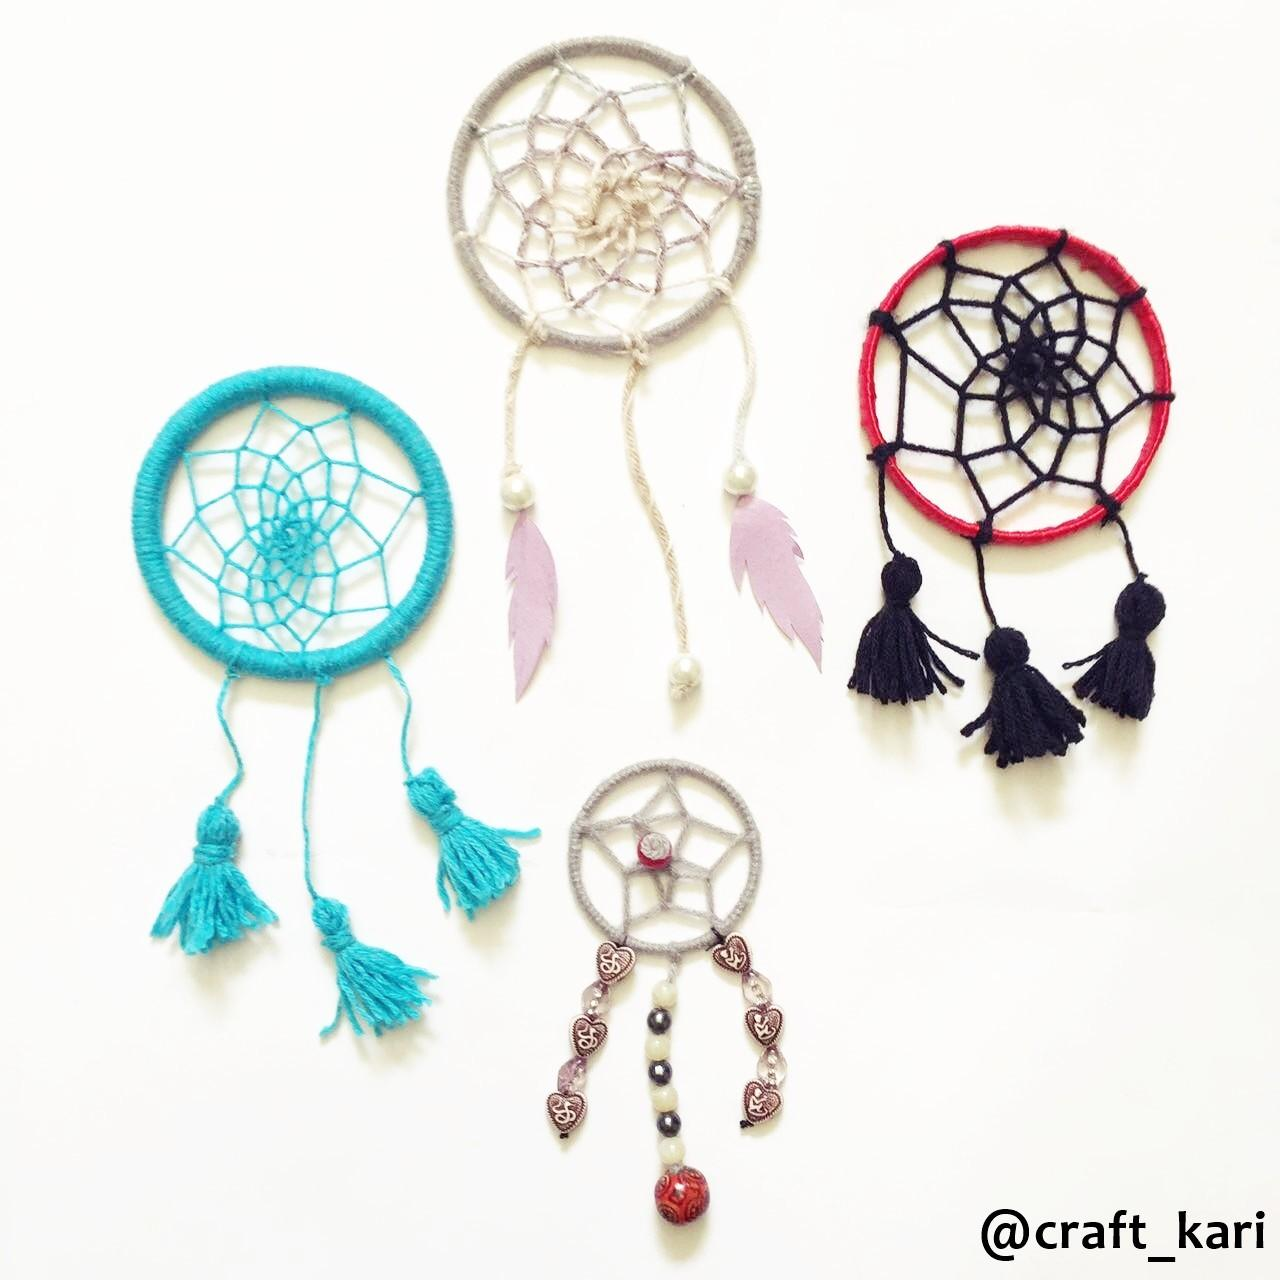 Make Diy Dreamcatchers Craft Kari